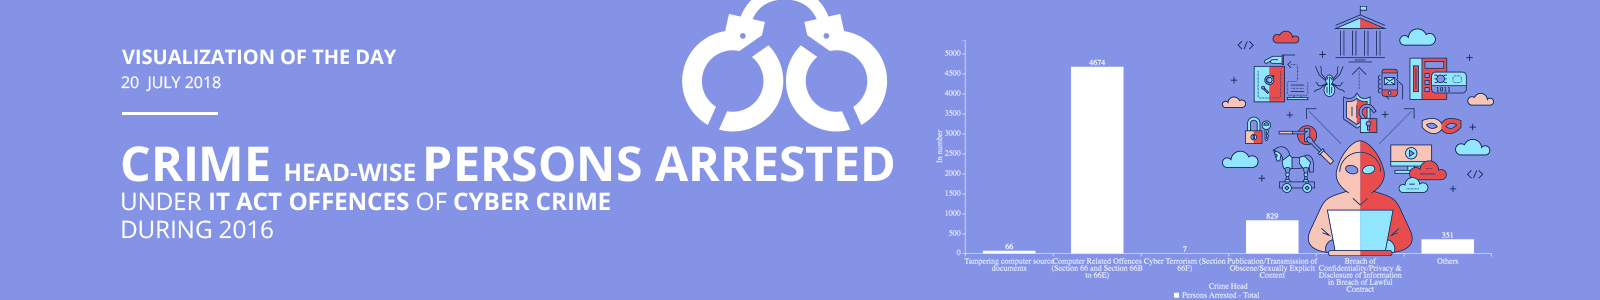 Visualization of the Day - 20th  July 2018 : Crime Head-wise Persons Arrested under IT Act Offences of Cyber Crime during 2016